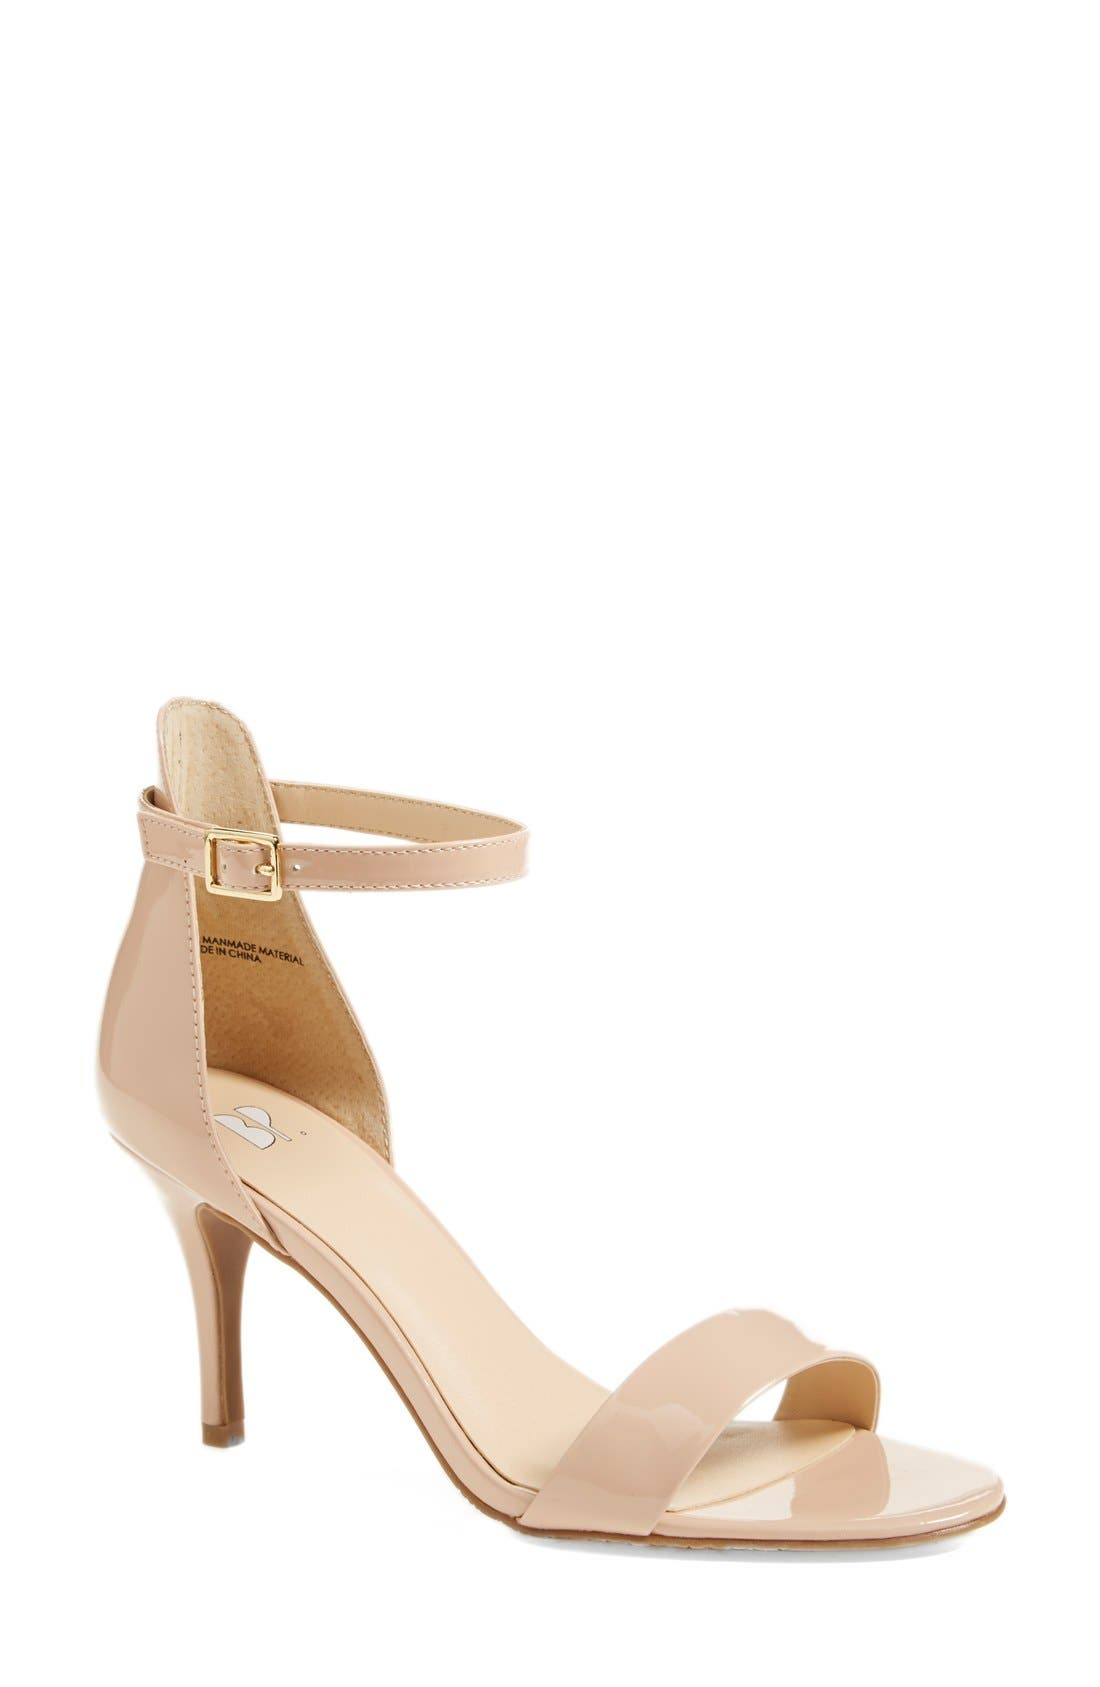 Alternate Image 1 Selected - BP. 'Luminate' Open Toe Dress Sandal (Women)